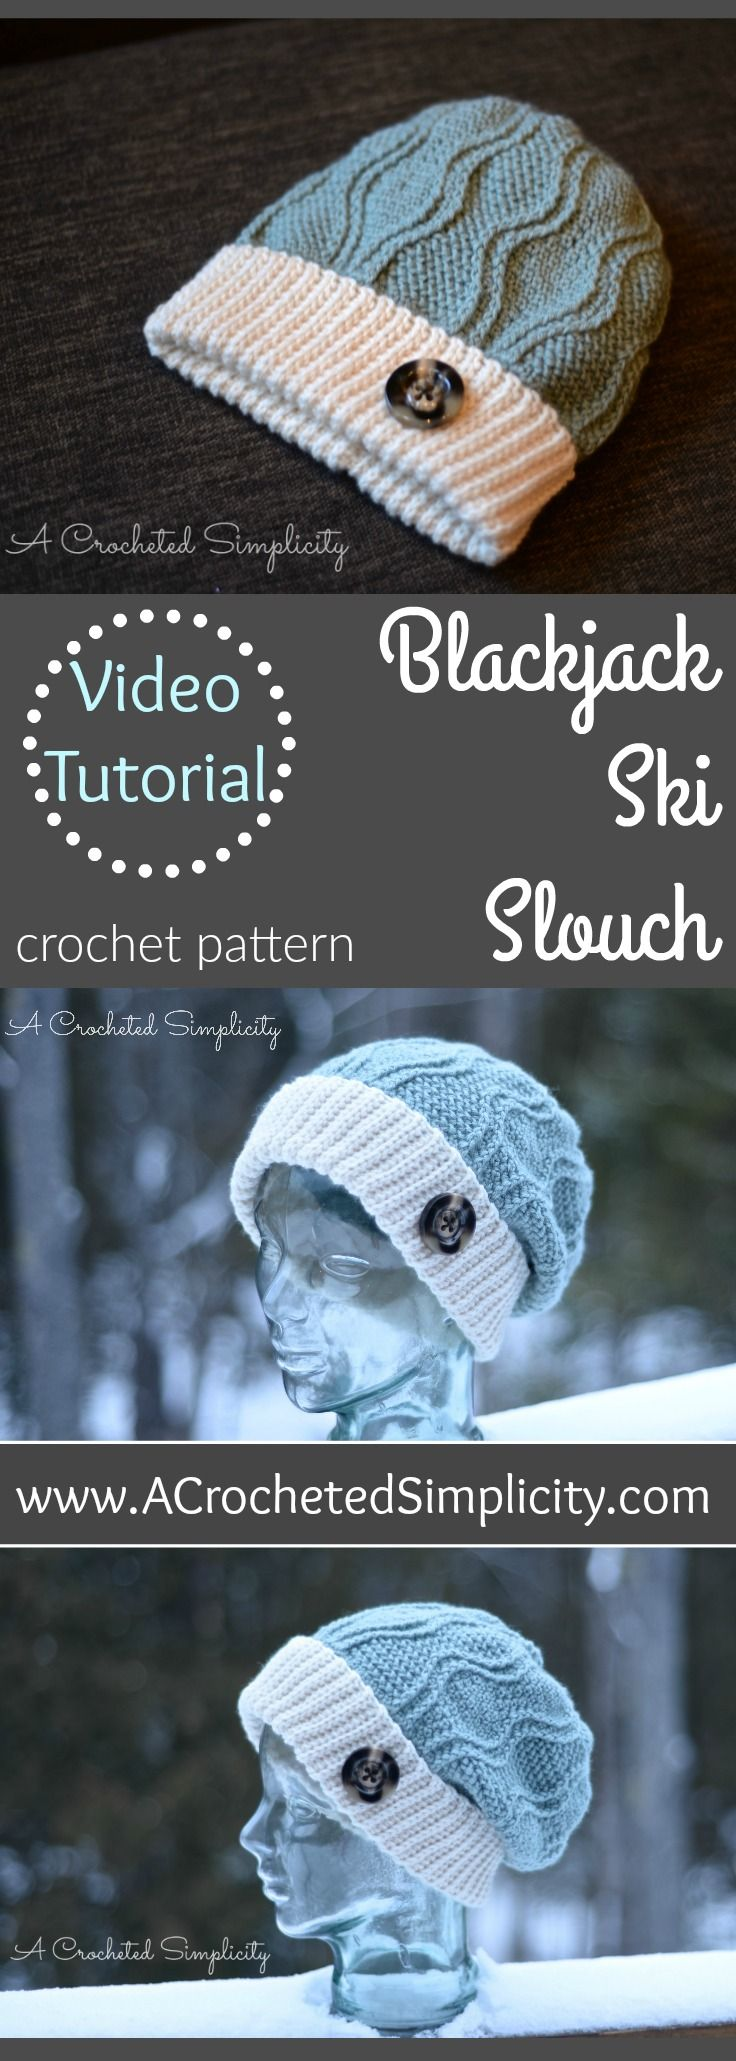 Crochet Pattern - Blackjack Ski Slouch w/ Video Tutorial by A Crocheted Simplicity